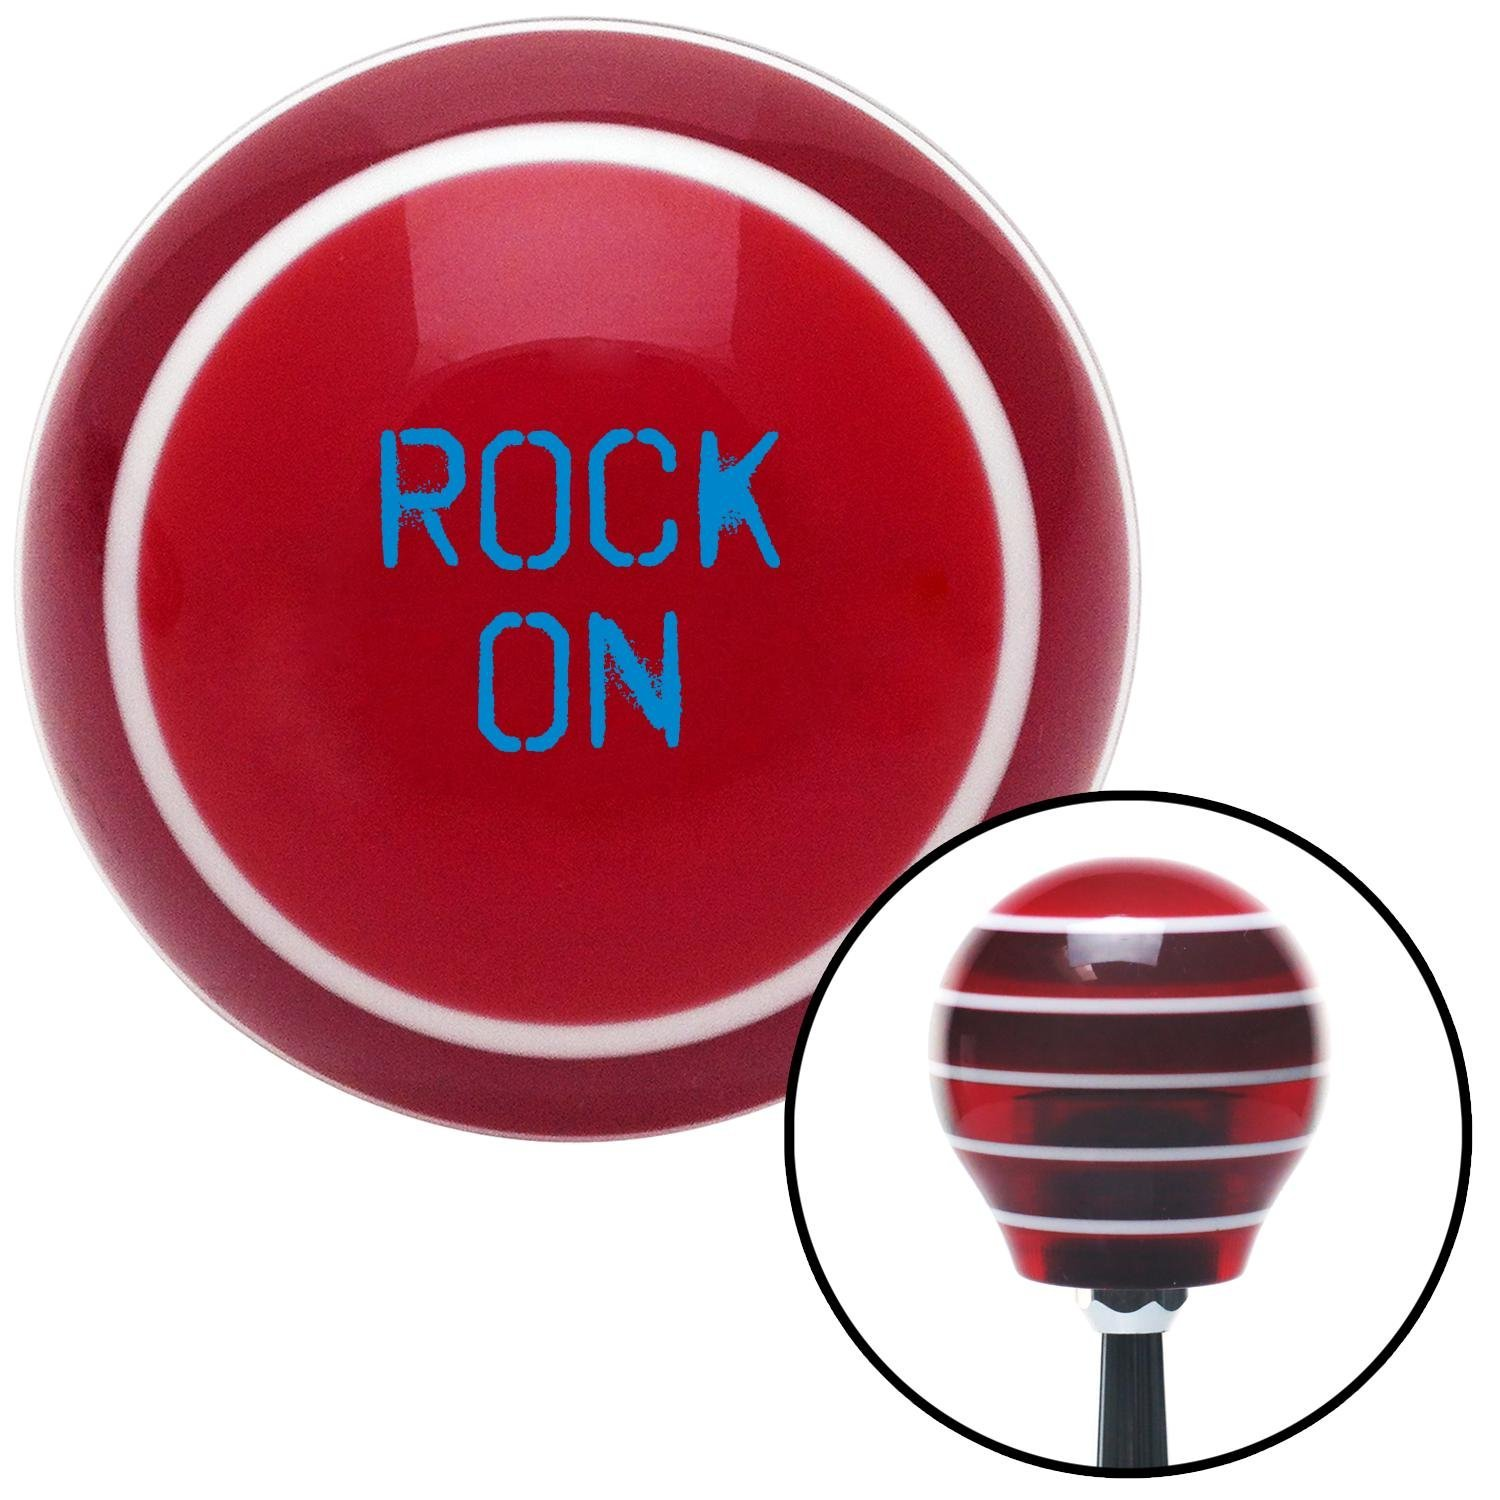 American Shifter 274623 Shift Knob Blue Rock On Red Stripe with M16 x 1.5 Insert